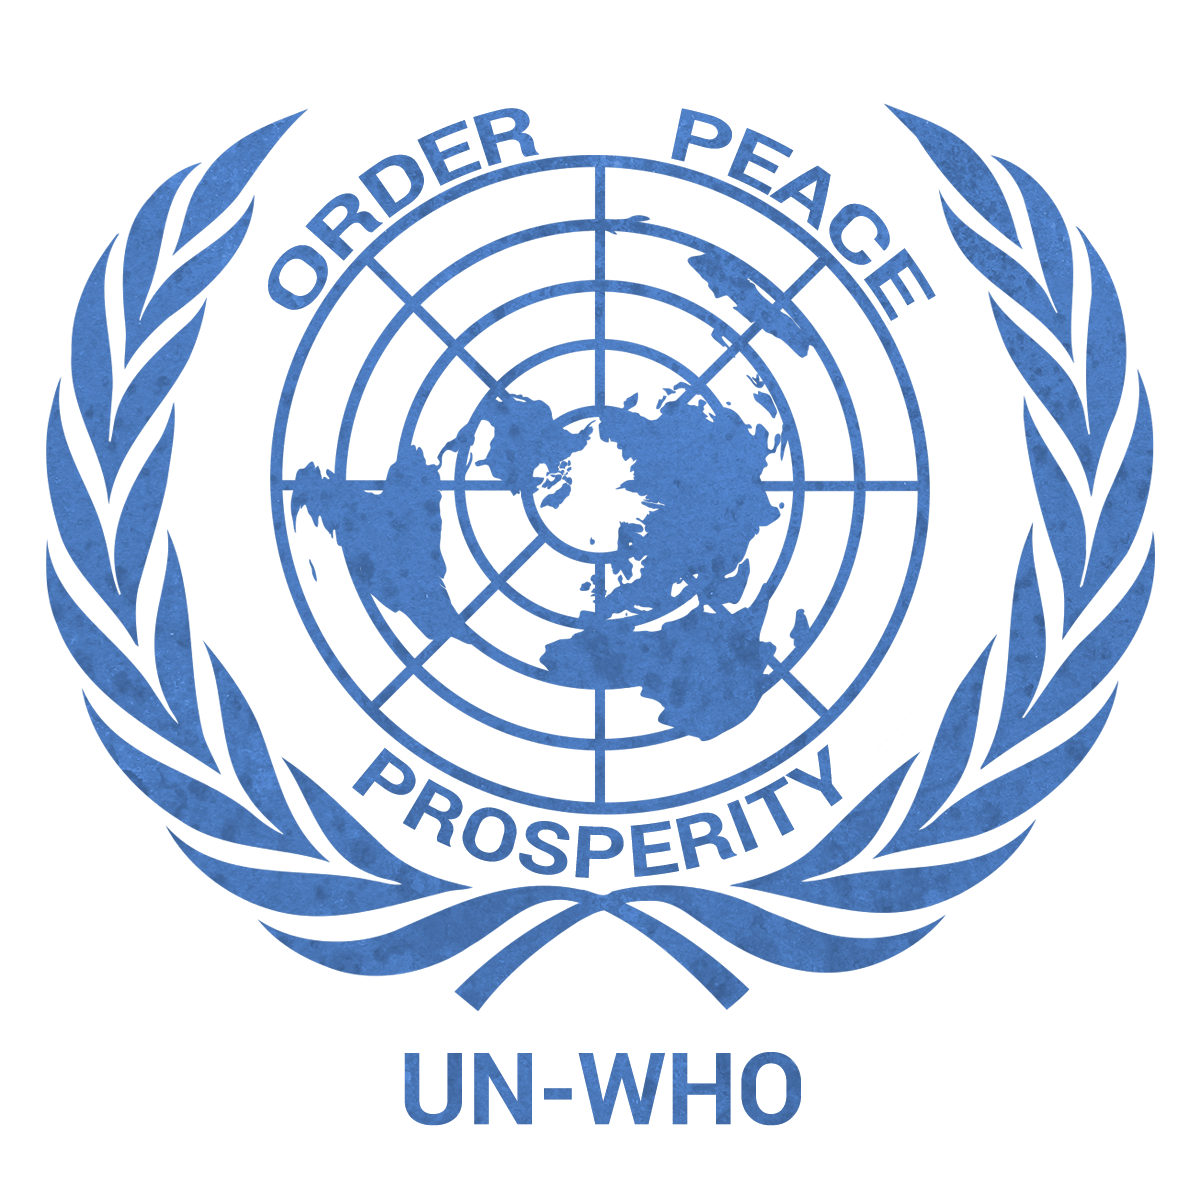 World health organisation png. United nations and organization